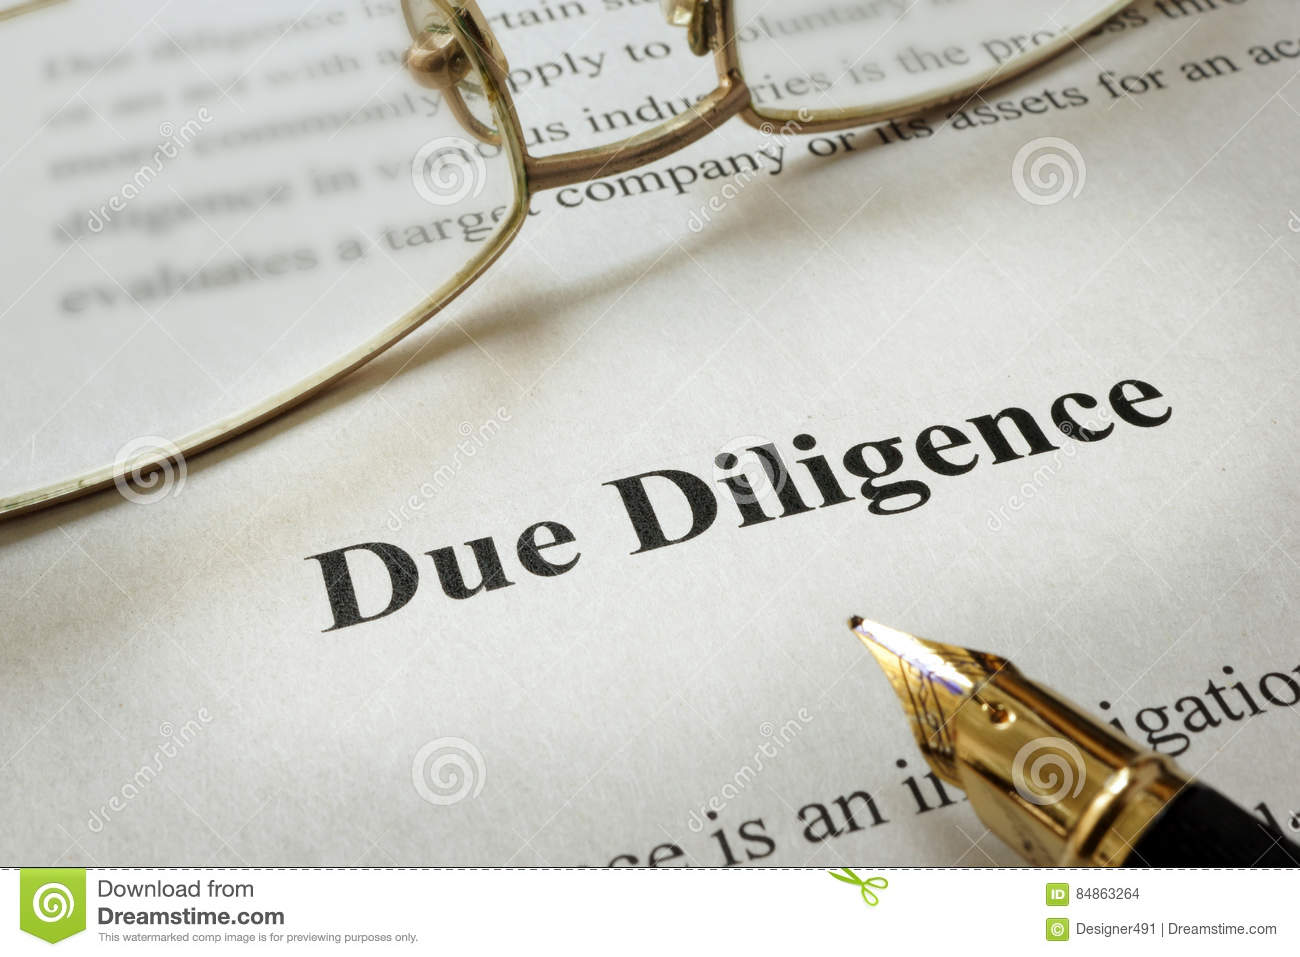 Due Diligence.